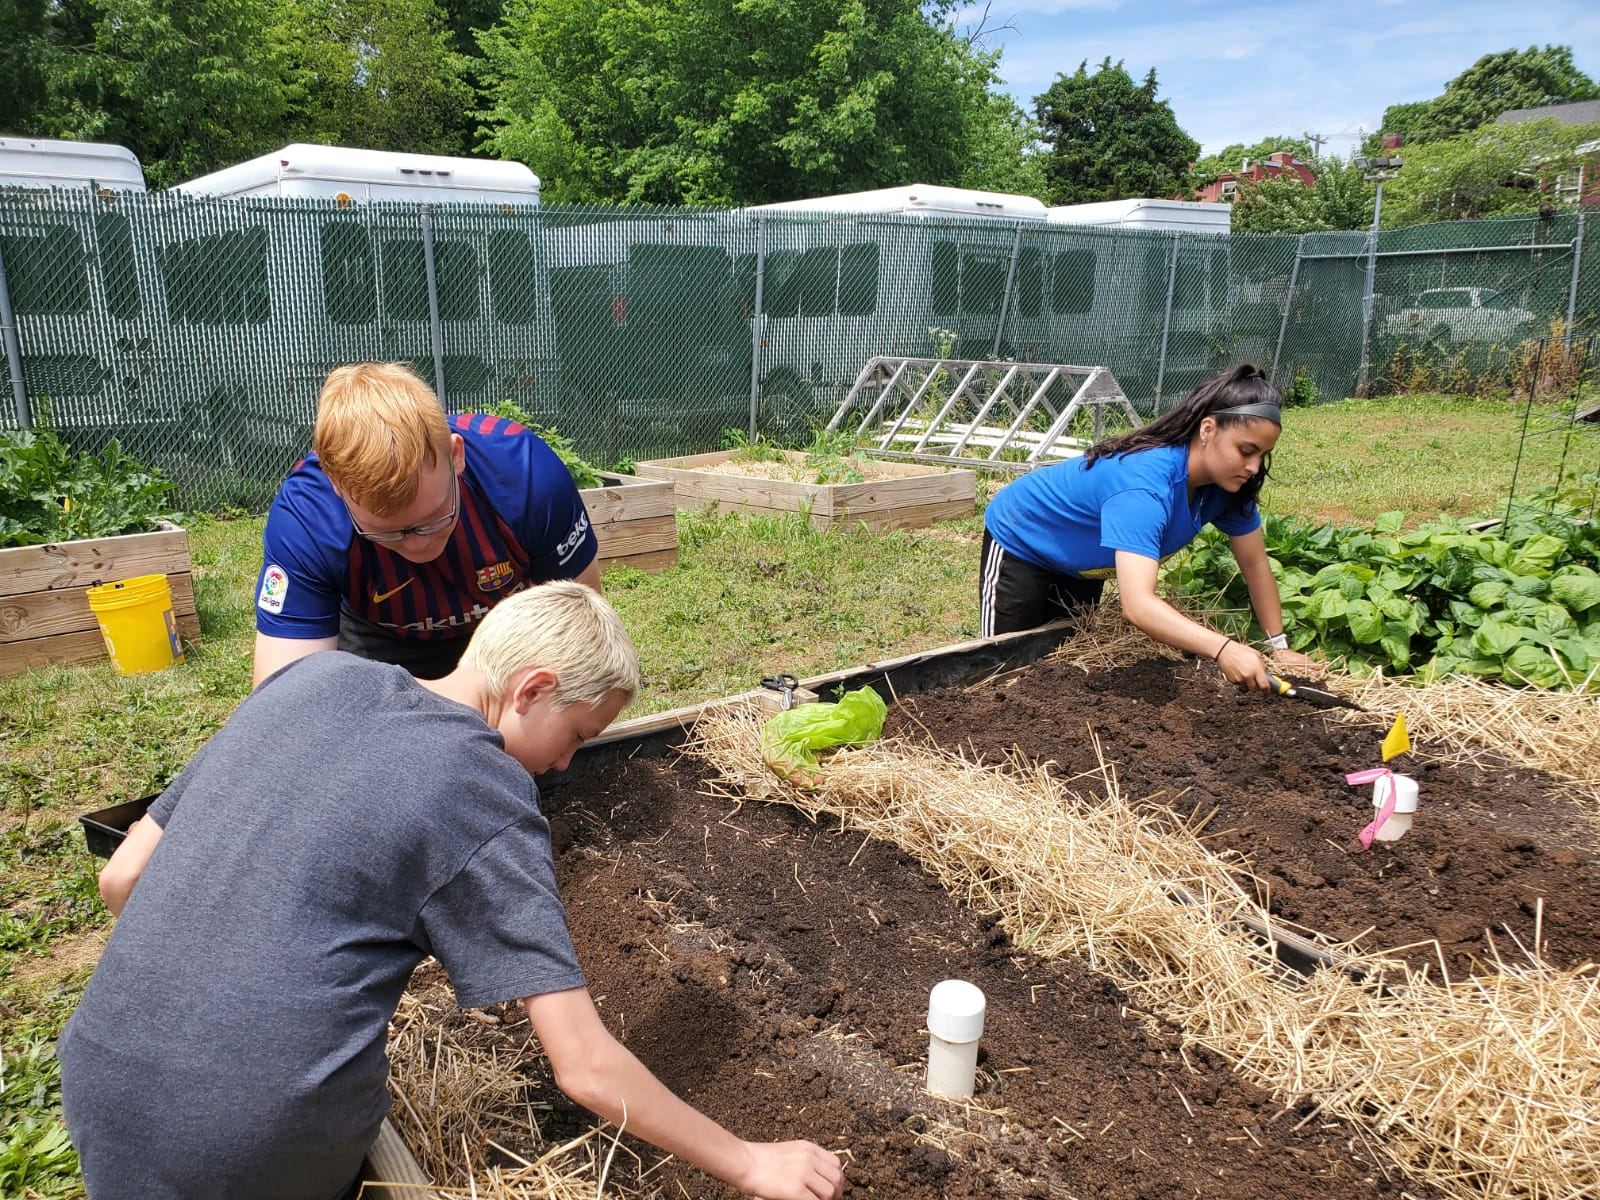 Students planting seeds at the Religious Coalition for Emergency Human Needs Garden